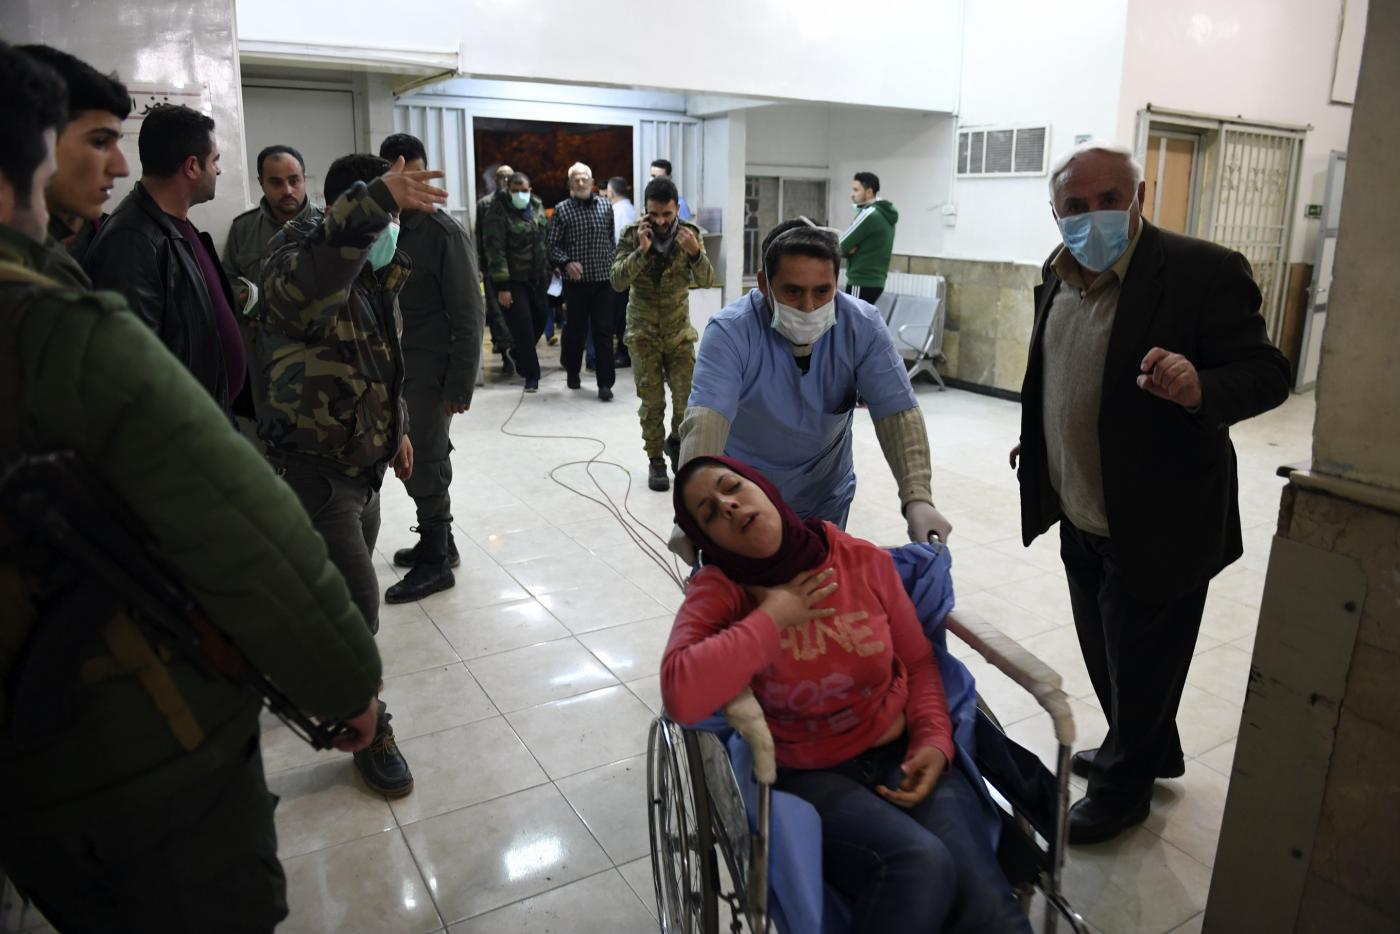 Syria's al-Assad forces accused of using chemical weapons